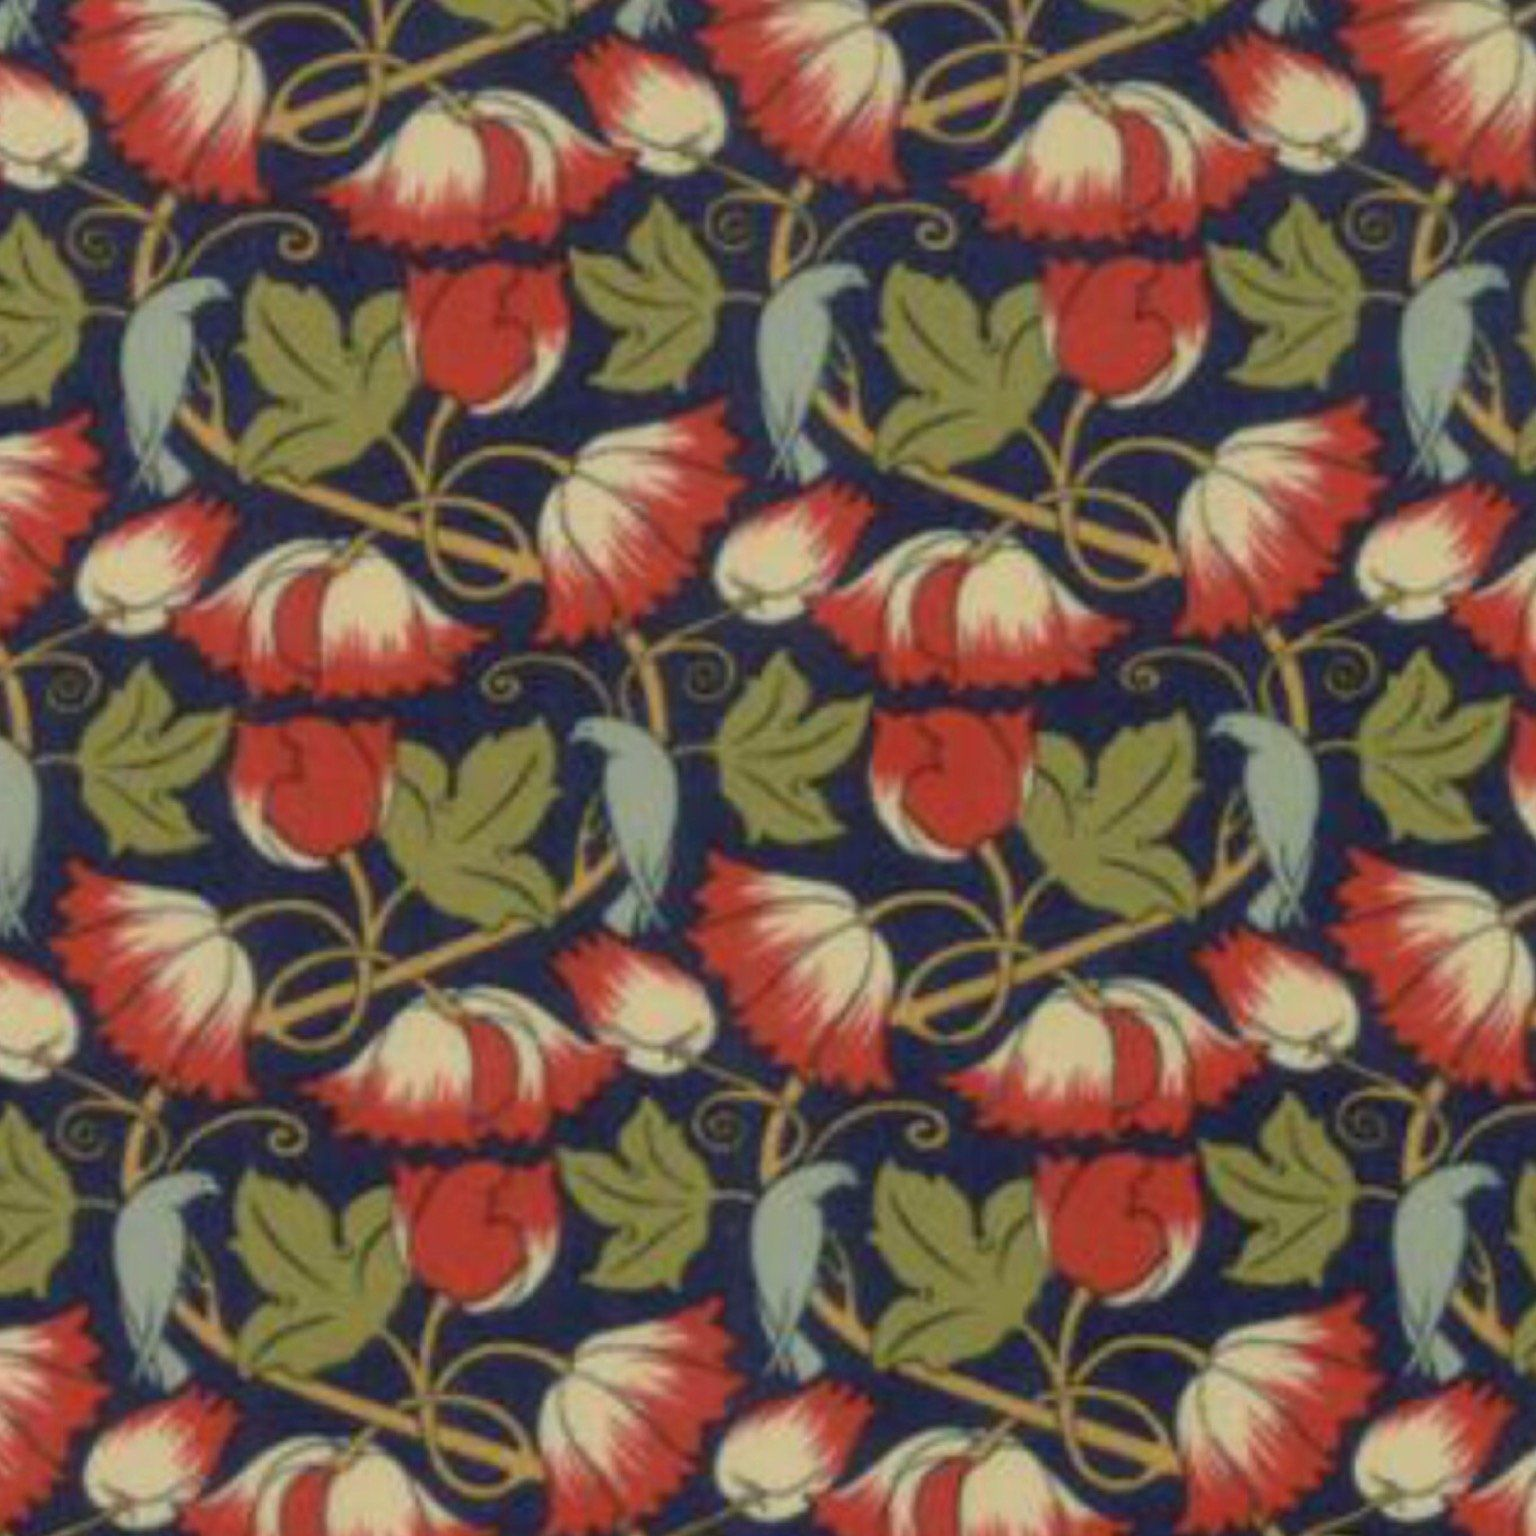 Voysey Dark Blue Perching Birds Floral Fabric by V & A - Moda Fabrics #birdfabric